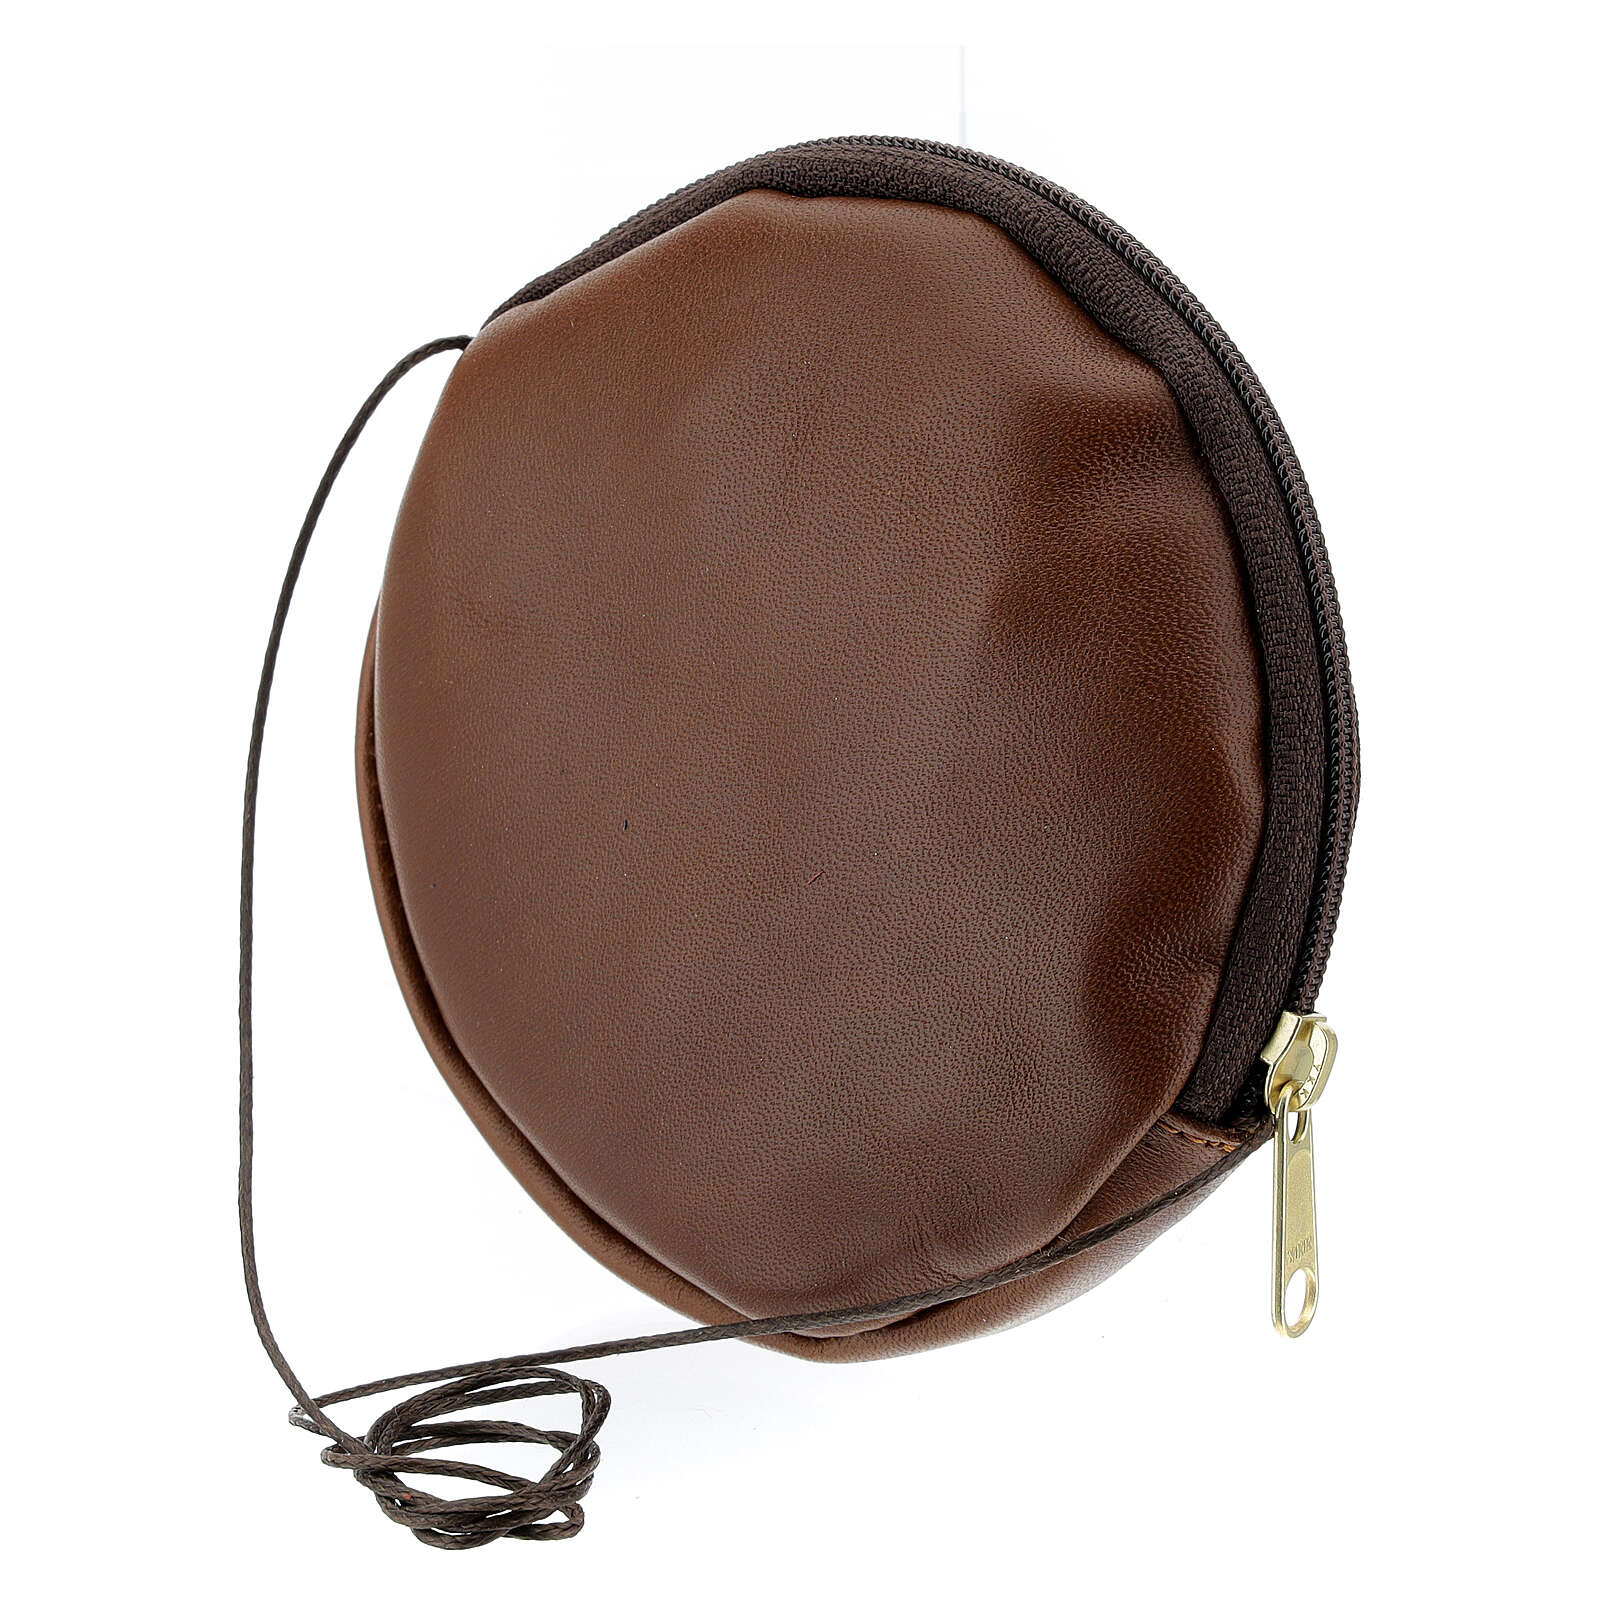 Paten burse 5 in real brown leather with Chi-Rho 4